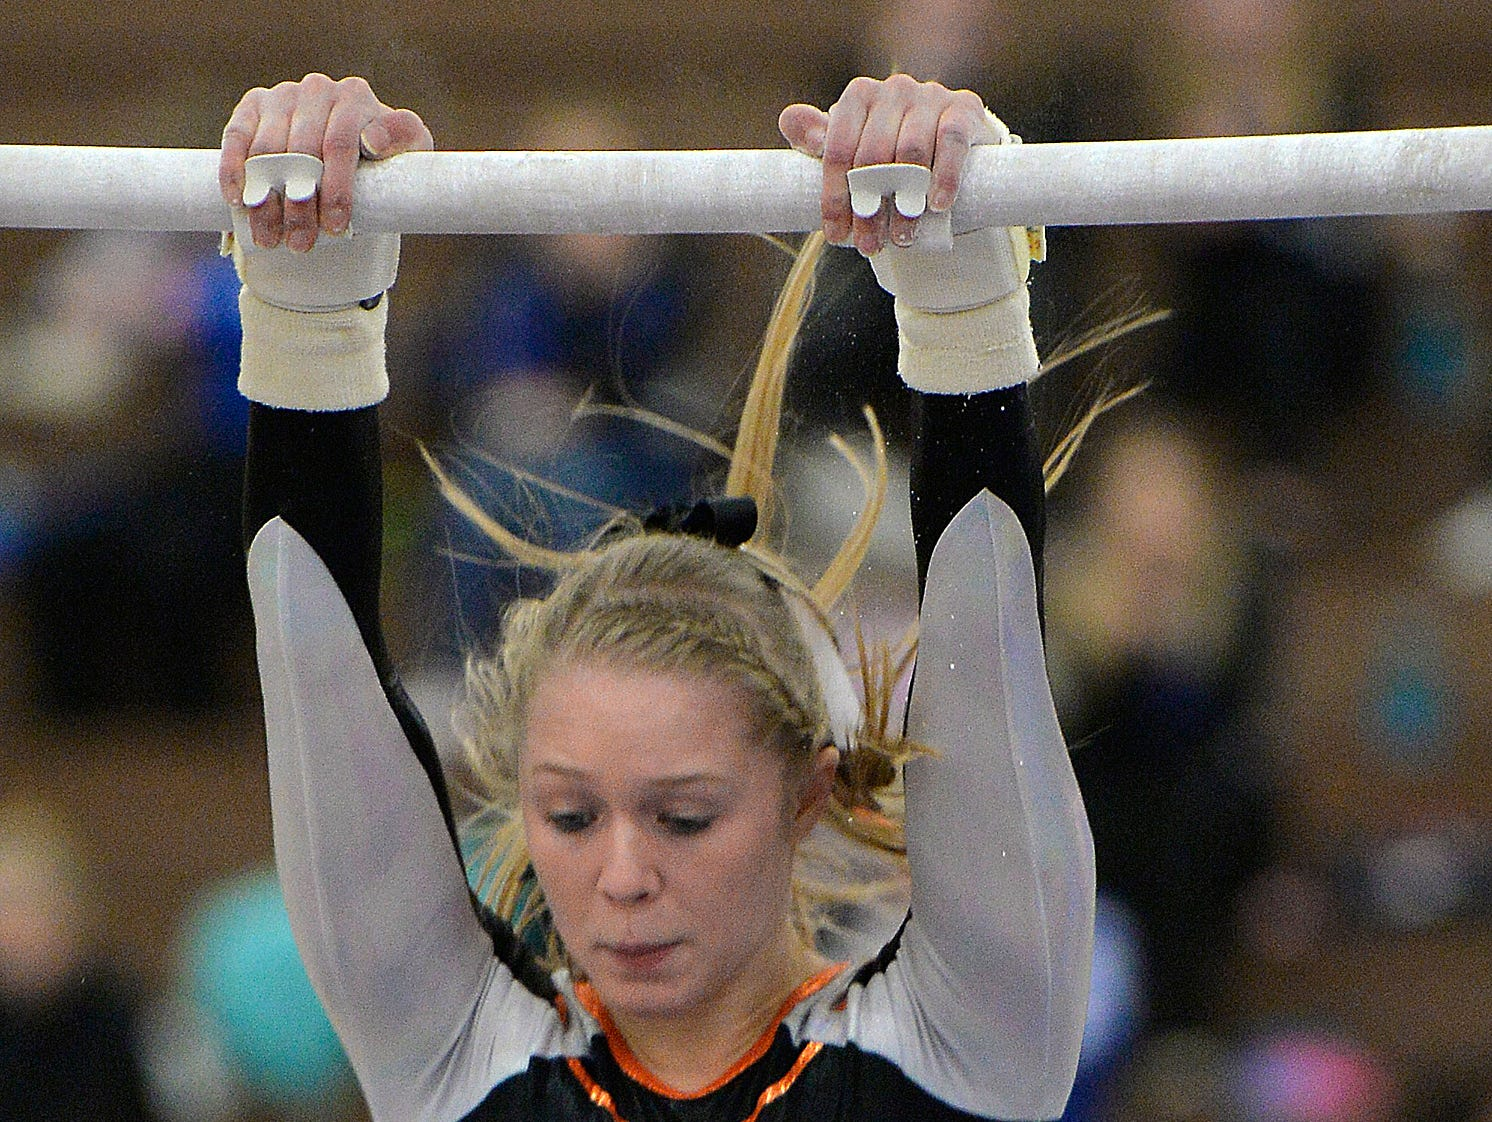 St. Cloud Tech senior gymnast Kalley Thompson swings through her routine on the uneven bars Saturday, Dec. 5 during the St. Cloud Apollo Gymnastics Invite.